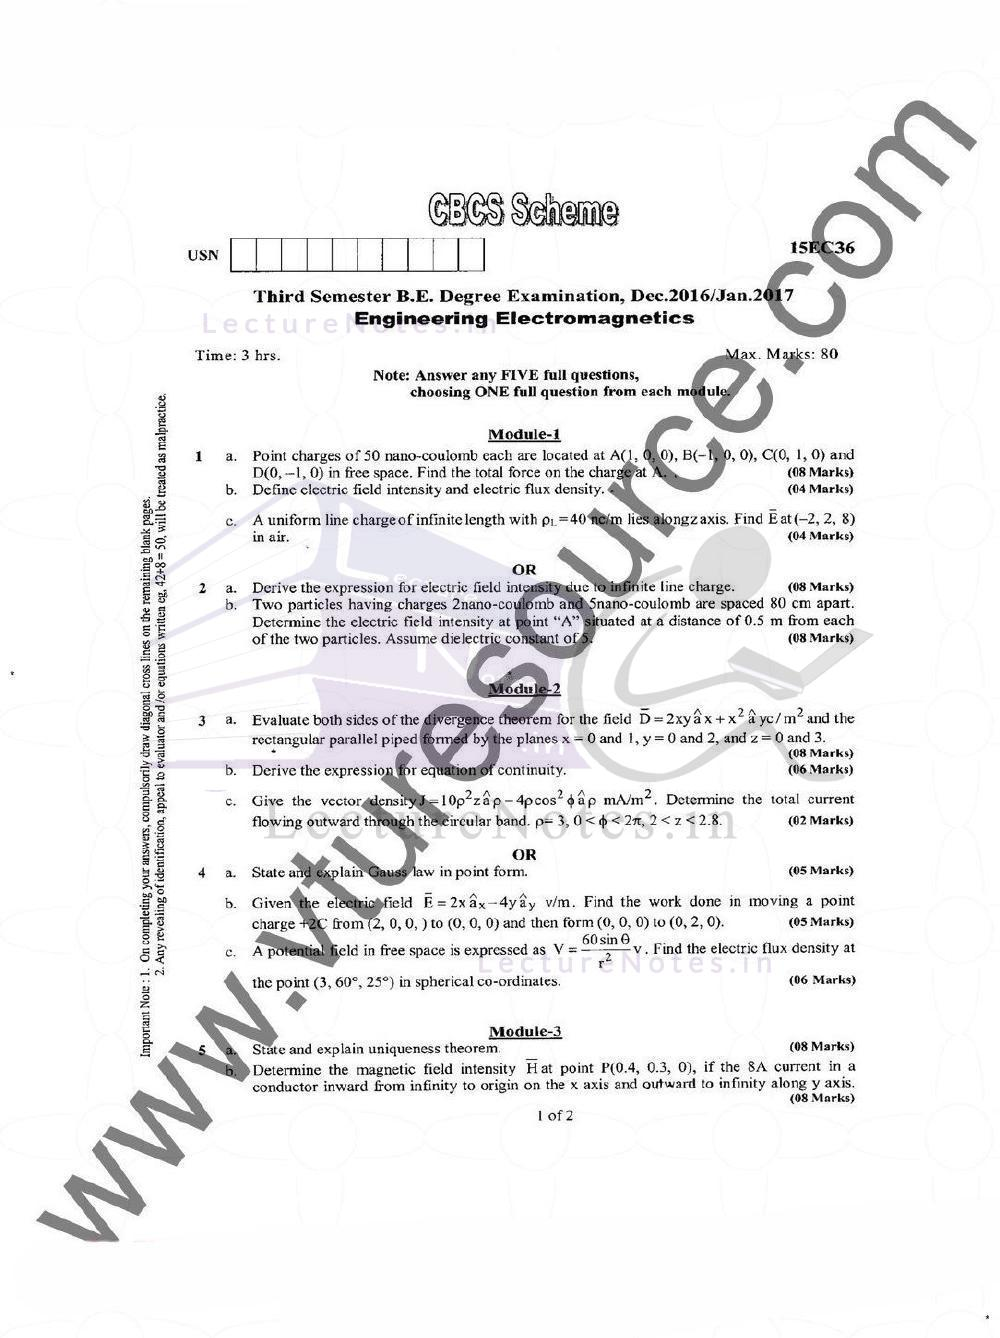 Electromagnetics Engineering Previous Year Question for